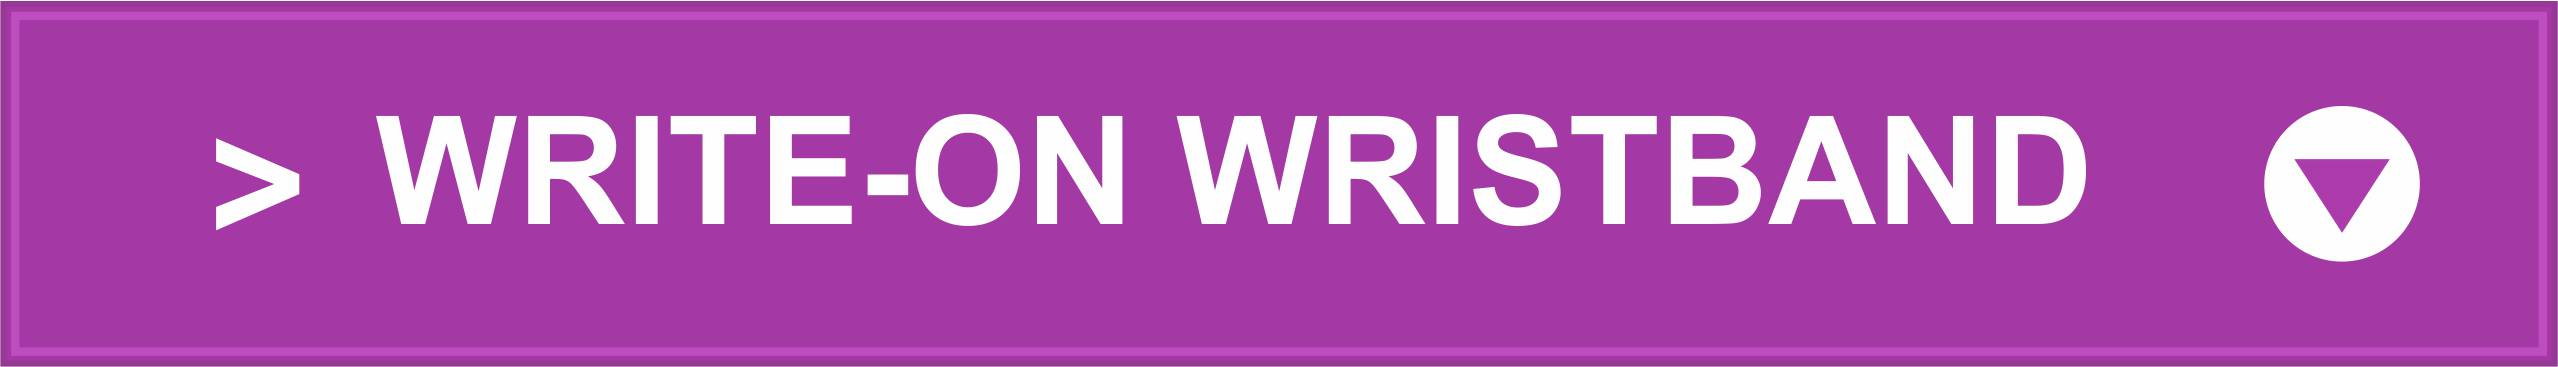 Write-on Wristband